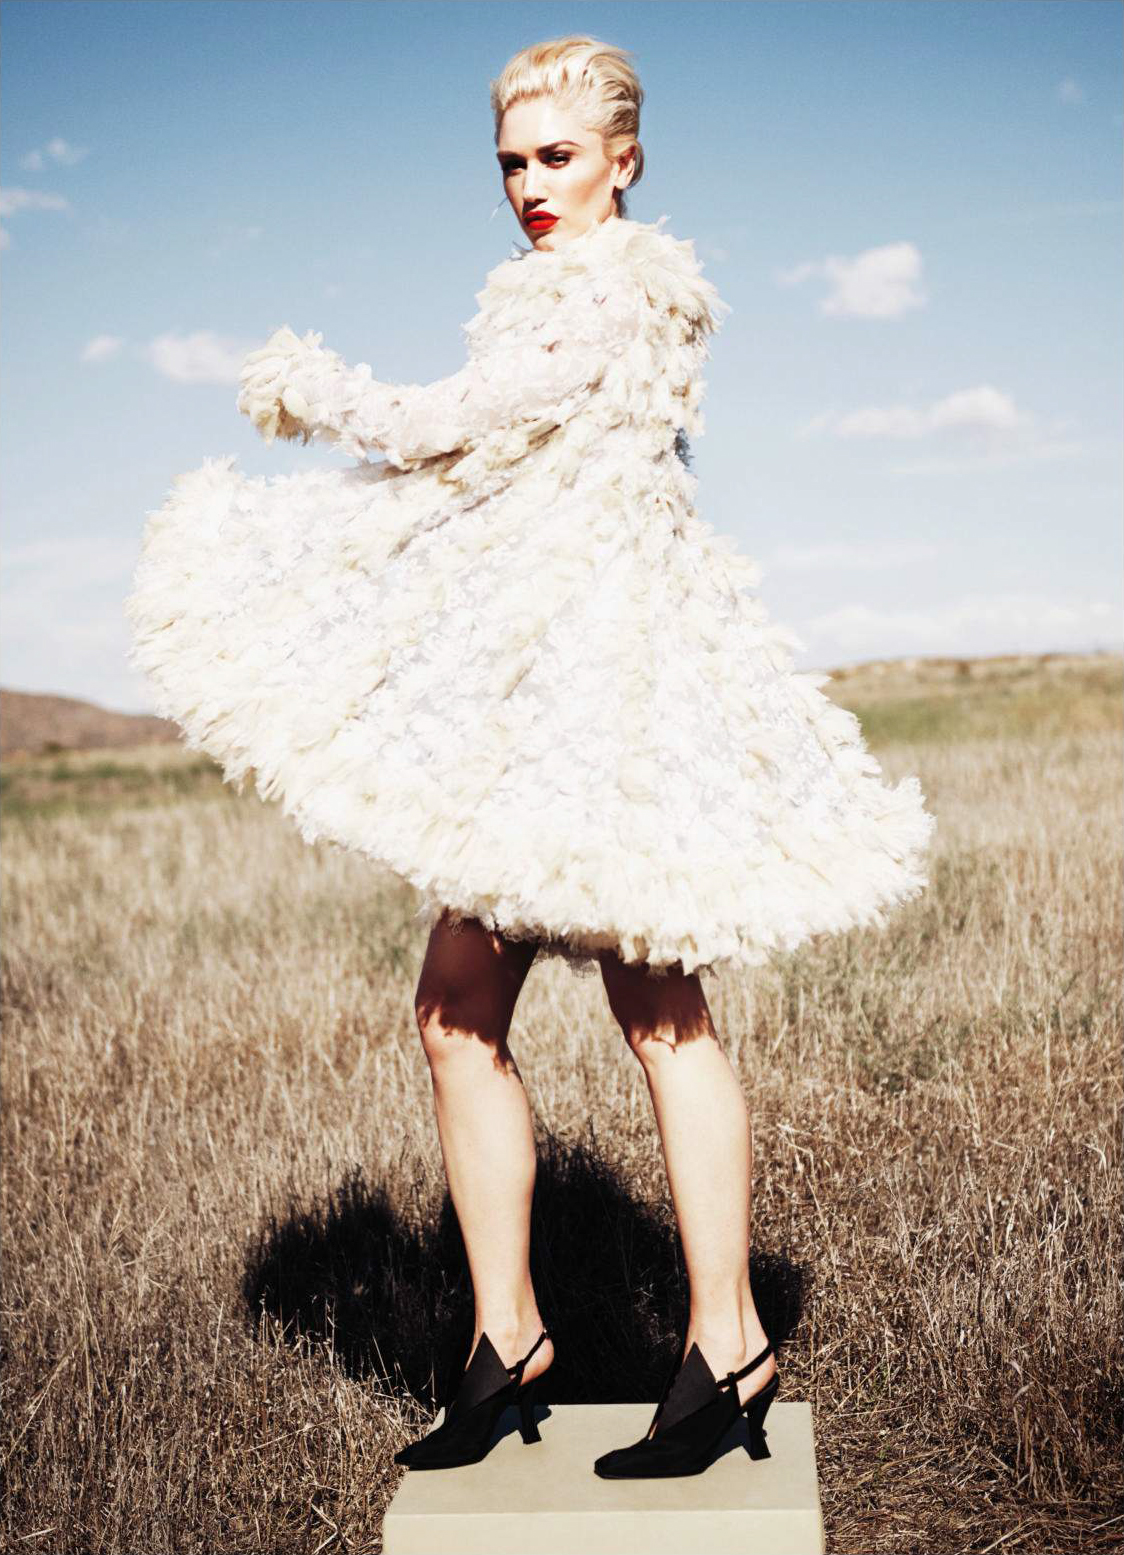 Photo courtesy of InStyle/Jan Welters